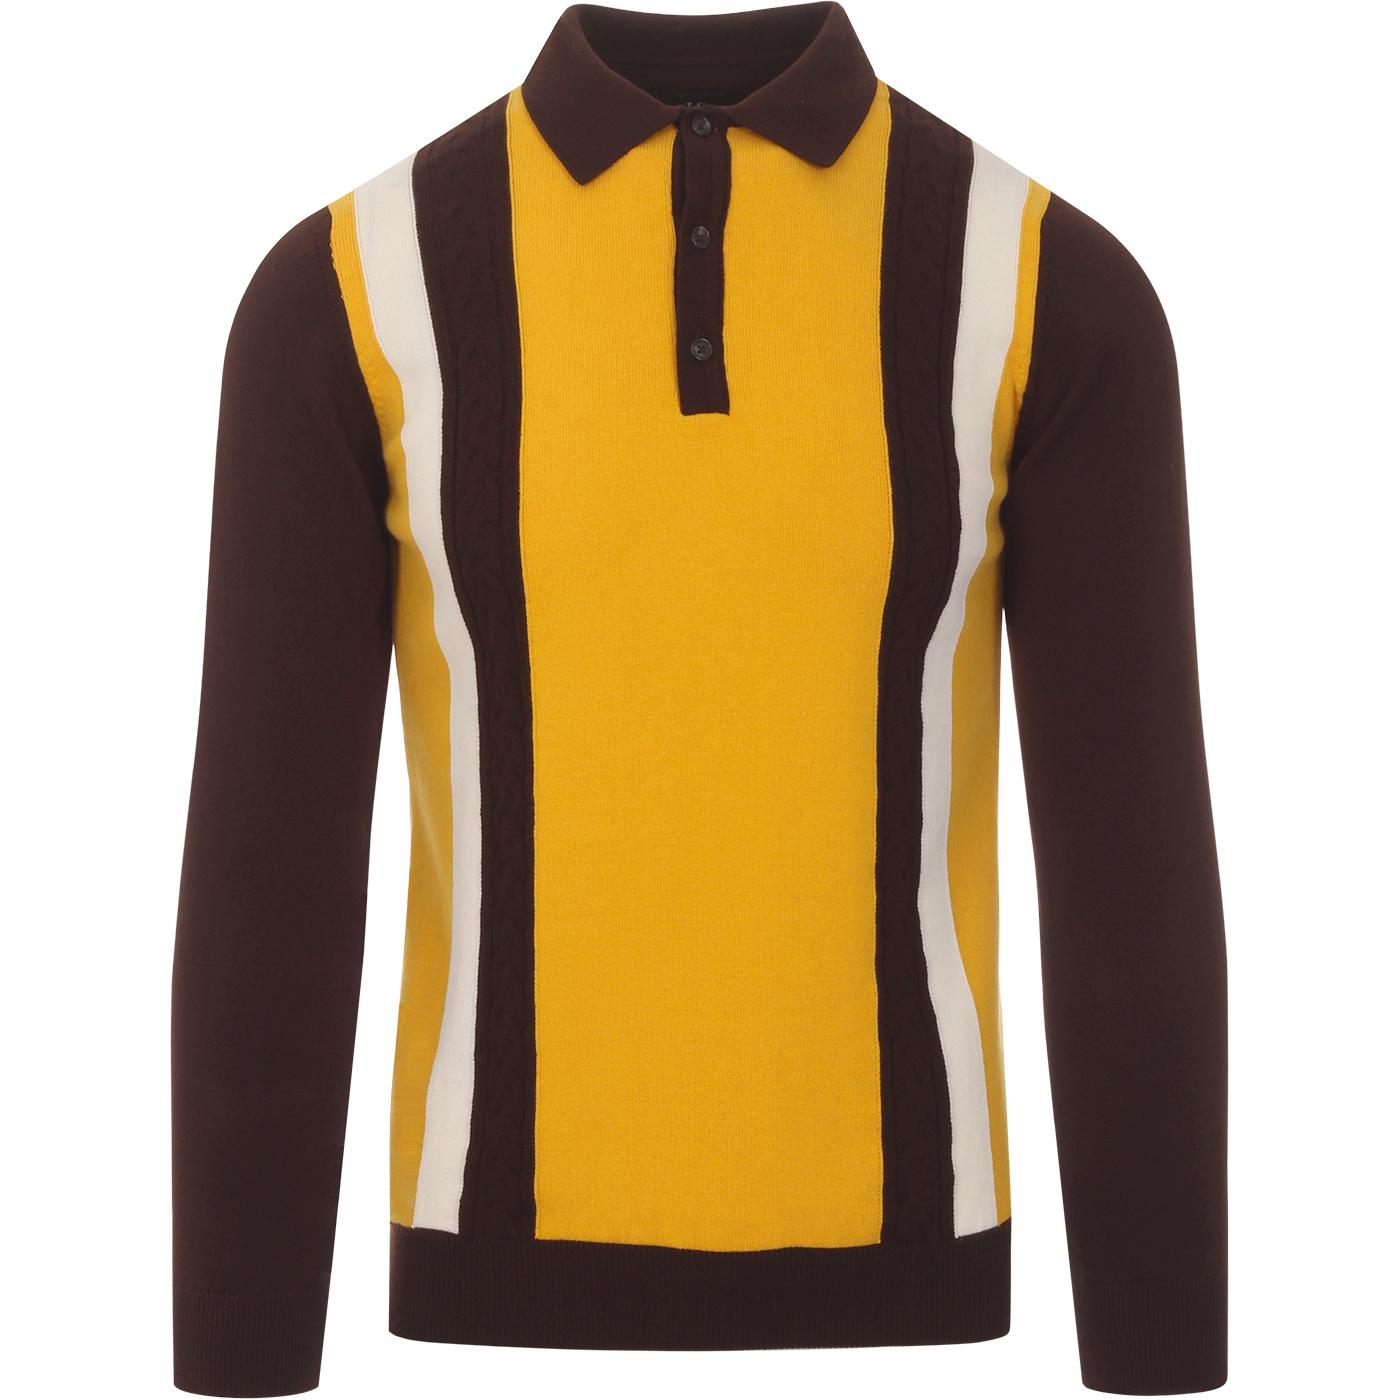 SKA & SOUL 60s Mod Stripe Cable Knit Polo Top (C)